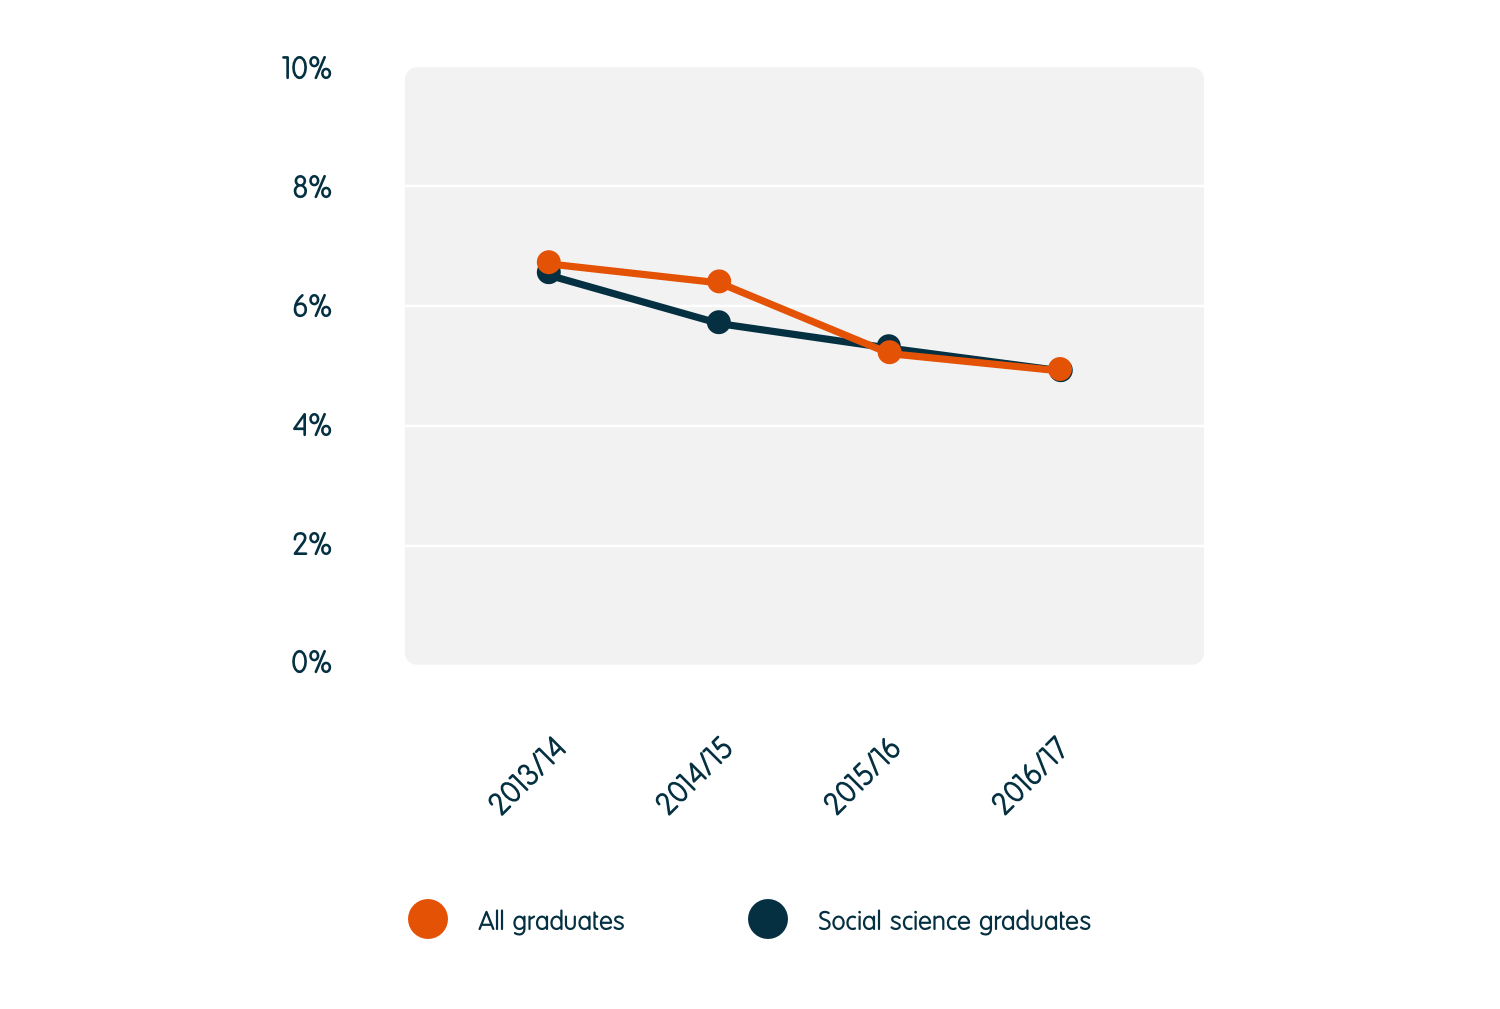 The unemployment rate for social science graduates reduced from 6.4% in 2013/14 to 5.1% in 2016/17. The unemployment rate for all graduates was also 5.1%.